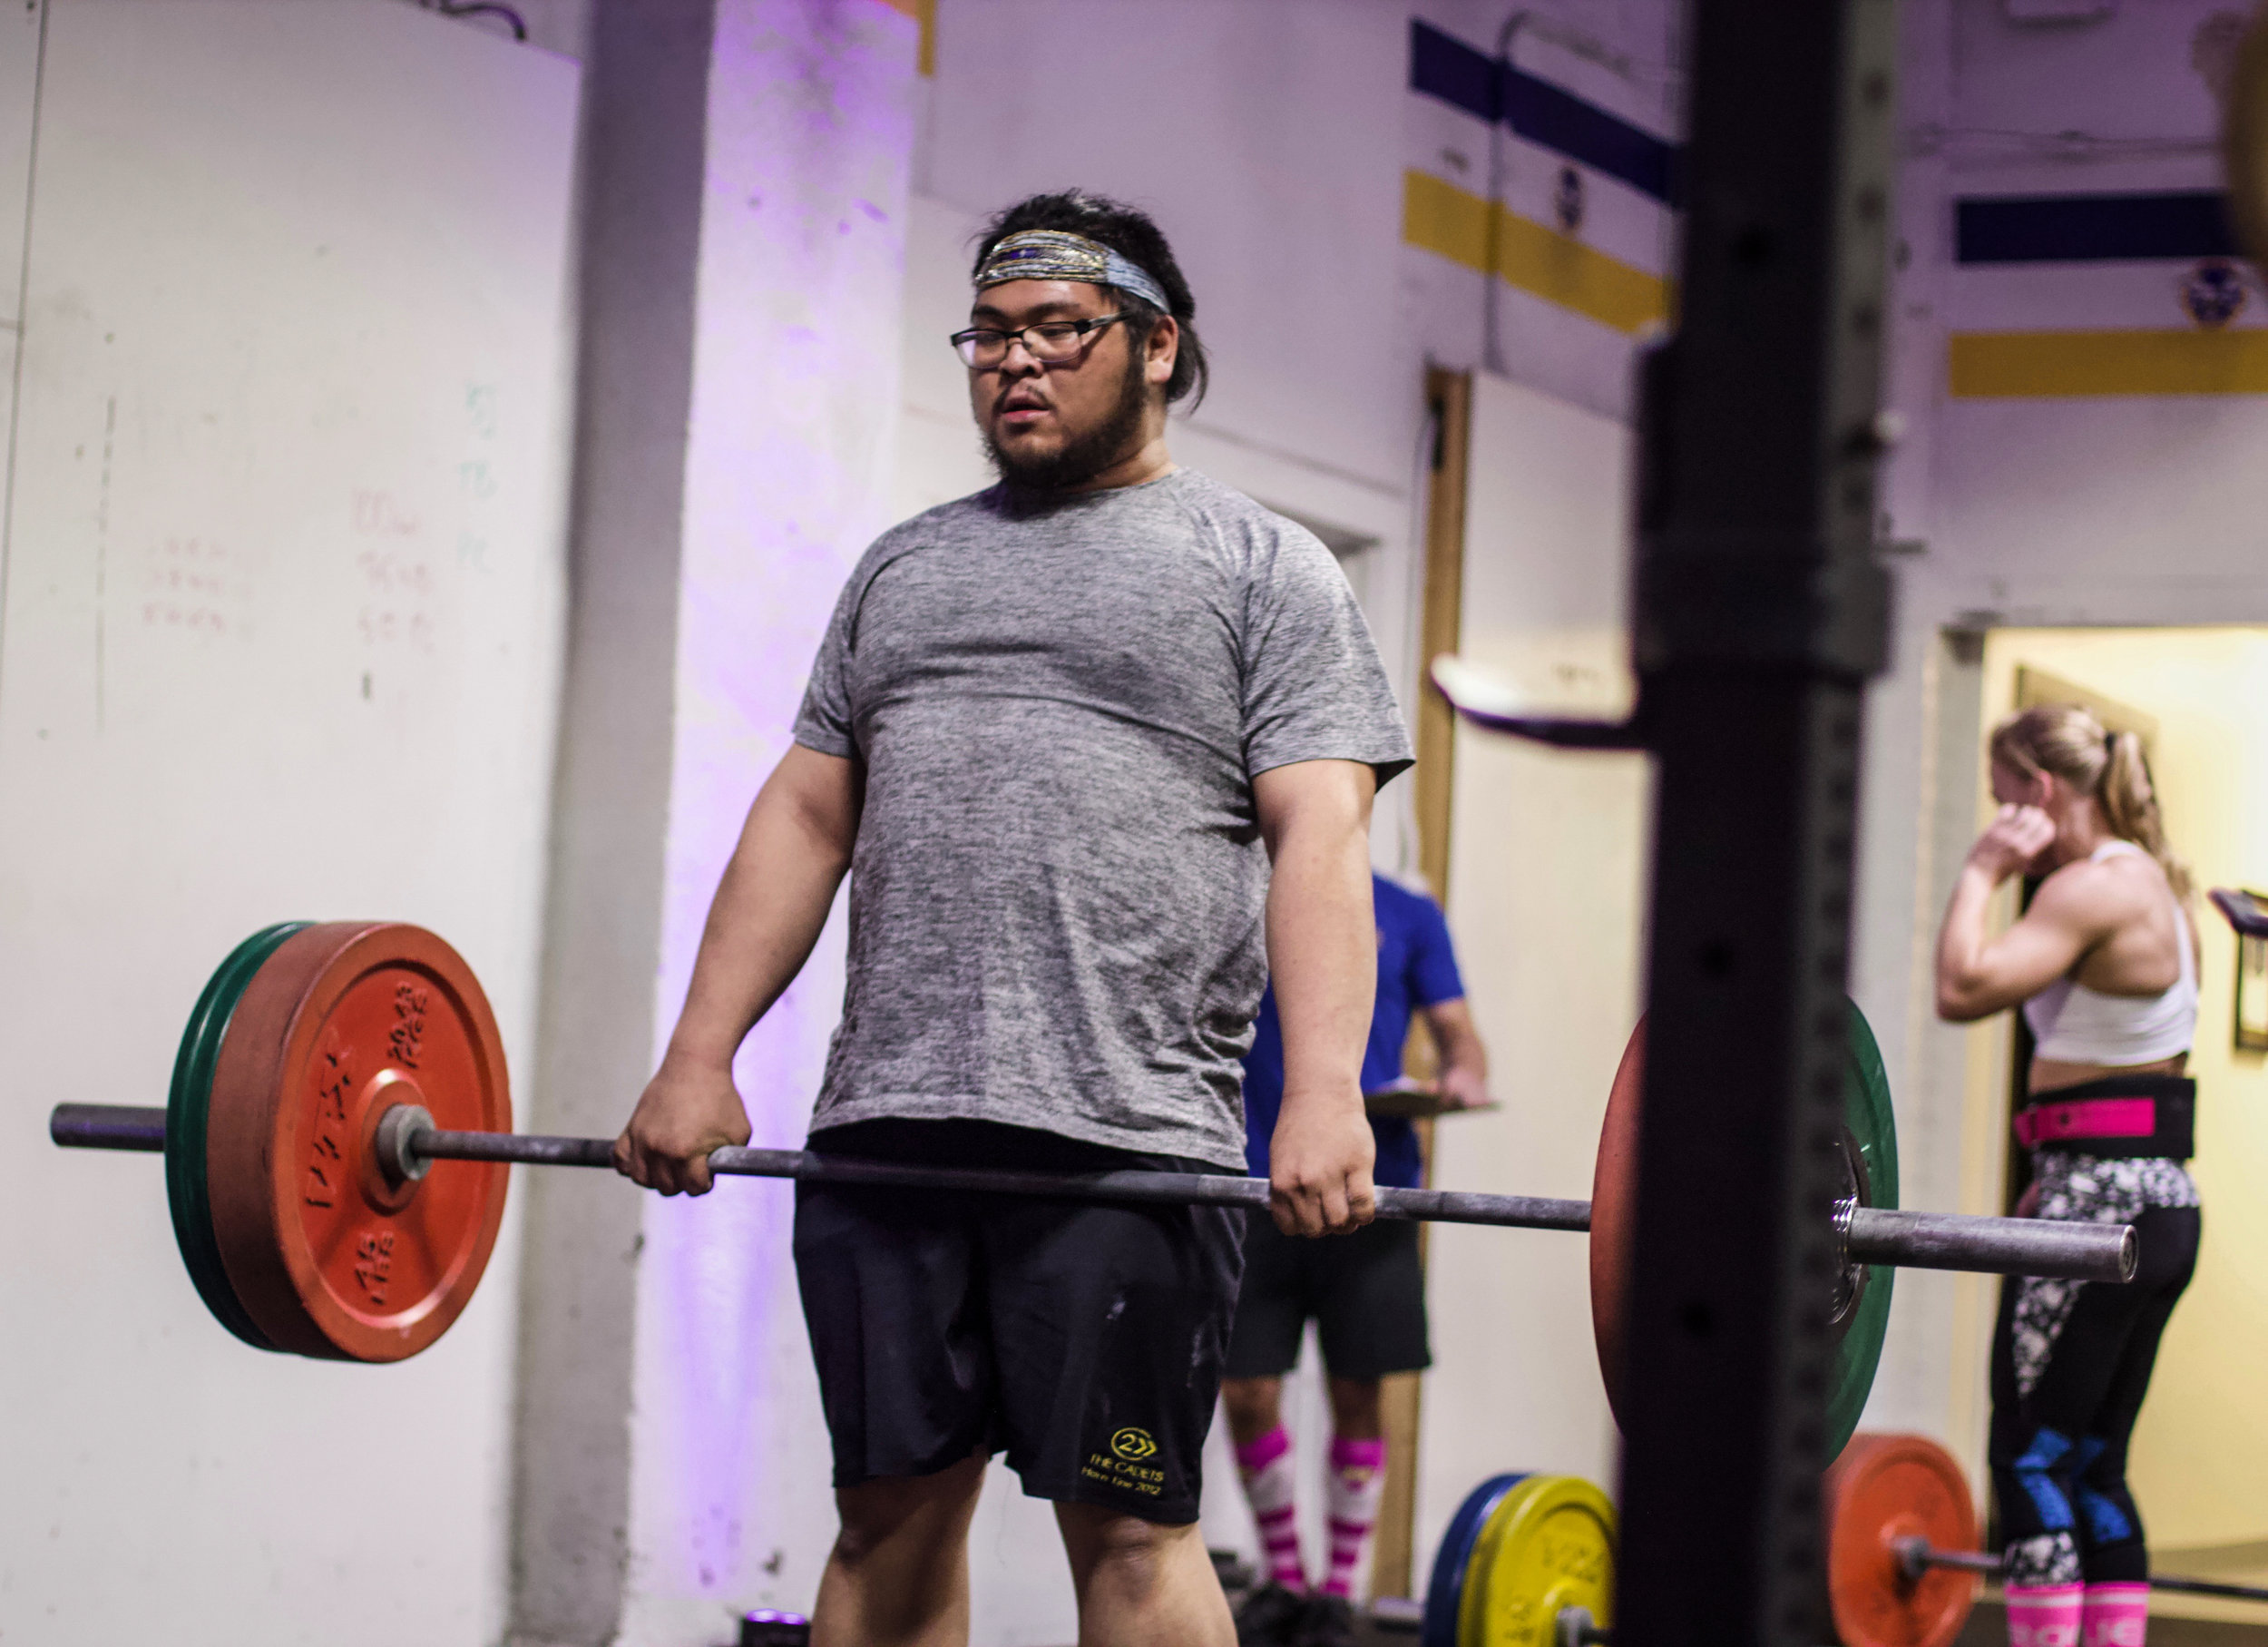 PVCF athlete, Bueno! He's the master of all of the special light and sound at the gym recently. Thank you, Bueno for making PVCF even more extraordinary!